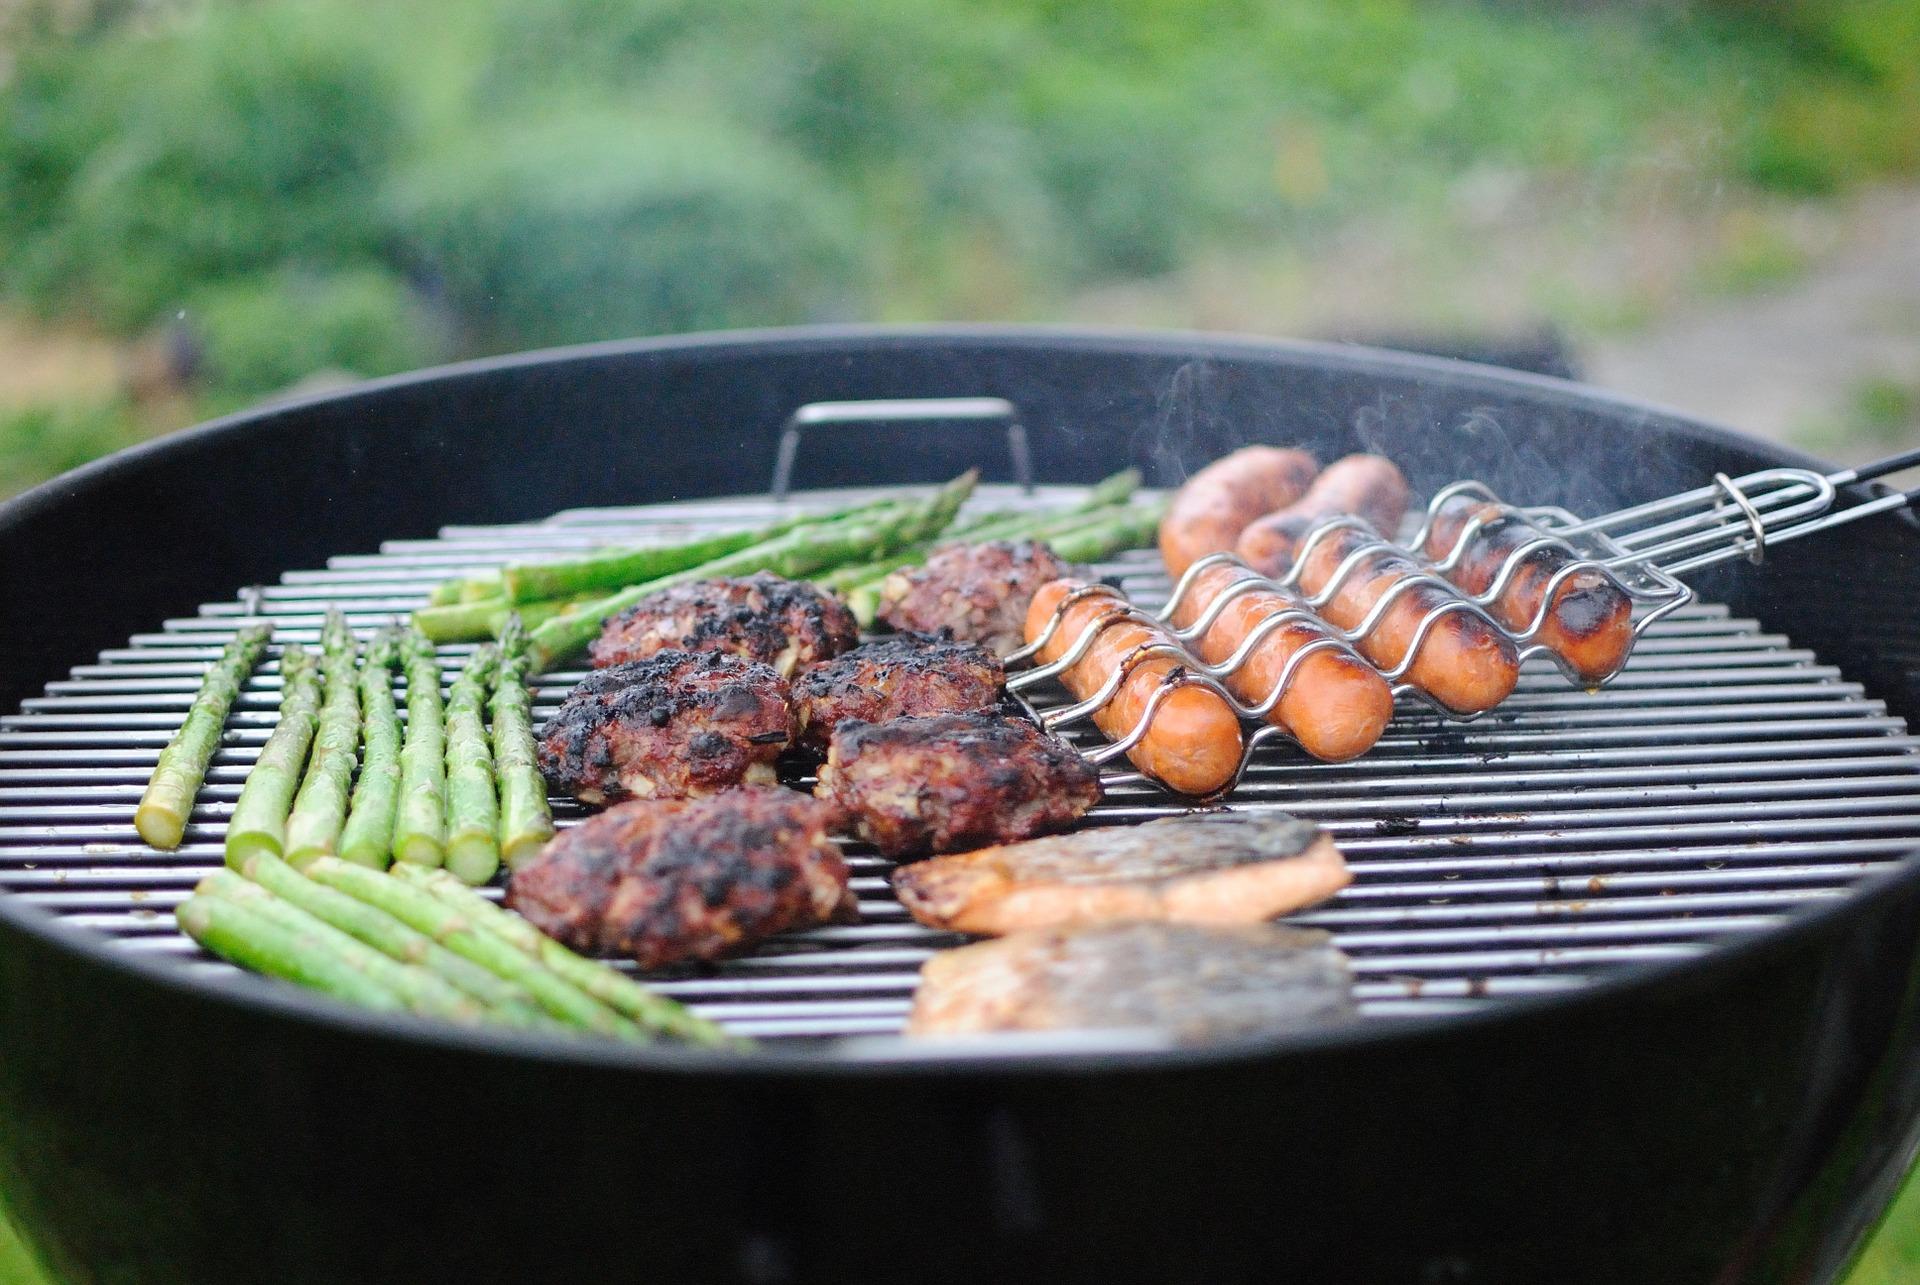 De musthaves voor de perfecte barbecue #bbq #tuin #tuintrends